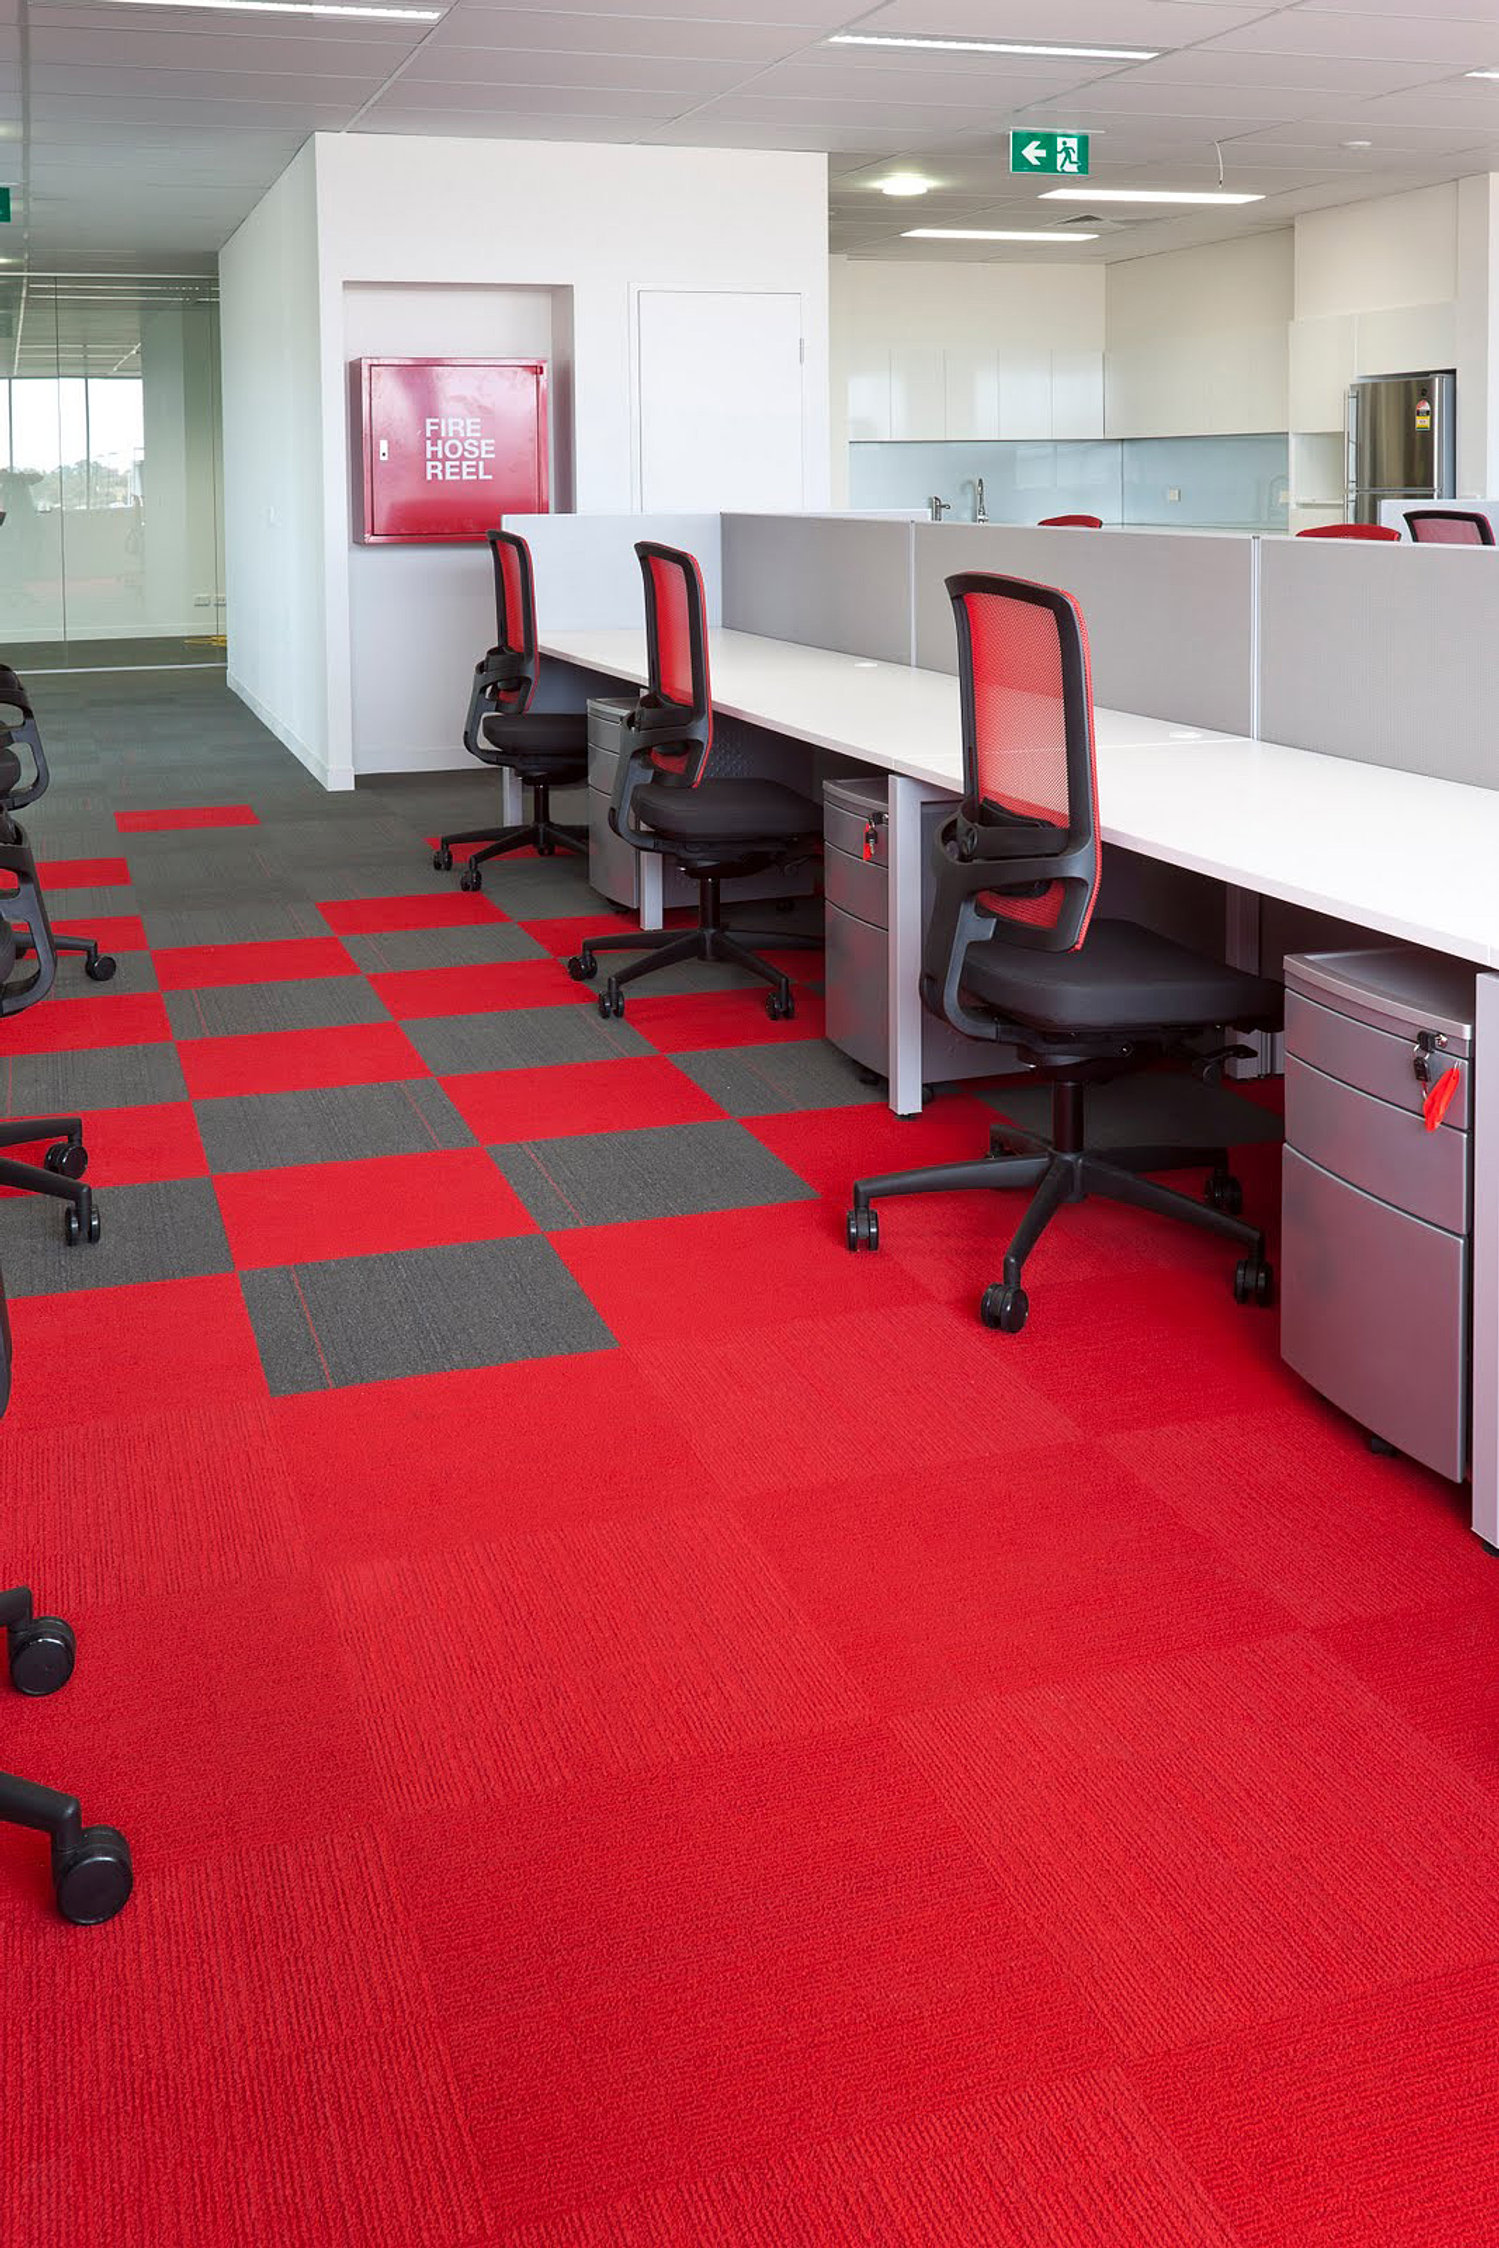 Rug carpet tile mohawk commercial grade carpet tiles rug and rug carpet tile mohawk commercial grade carpet tiles commercial carpet tiles cheap baanklon Images